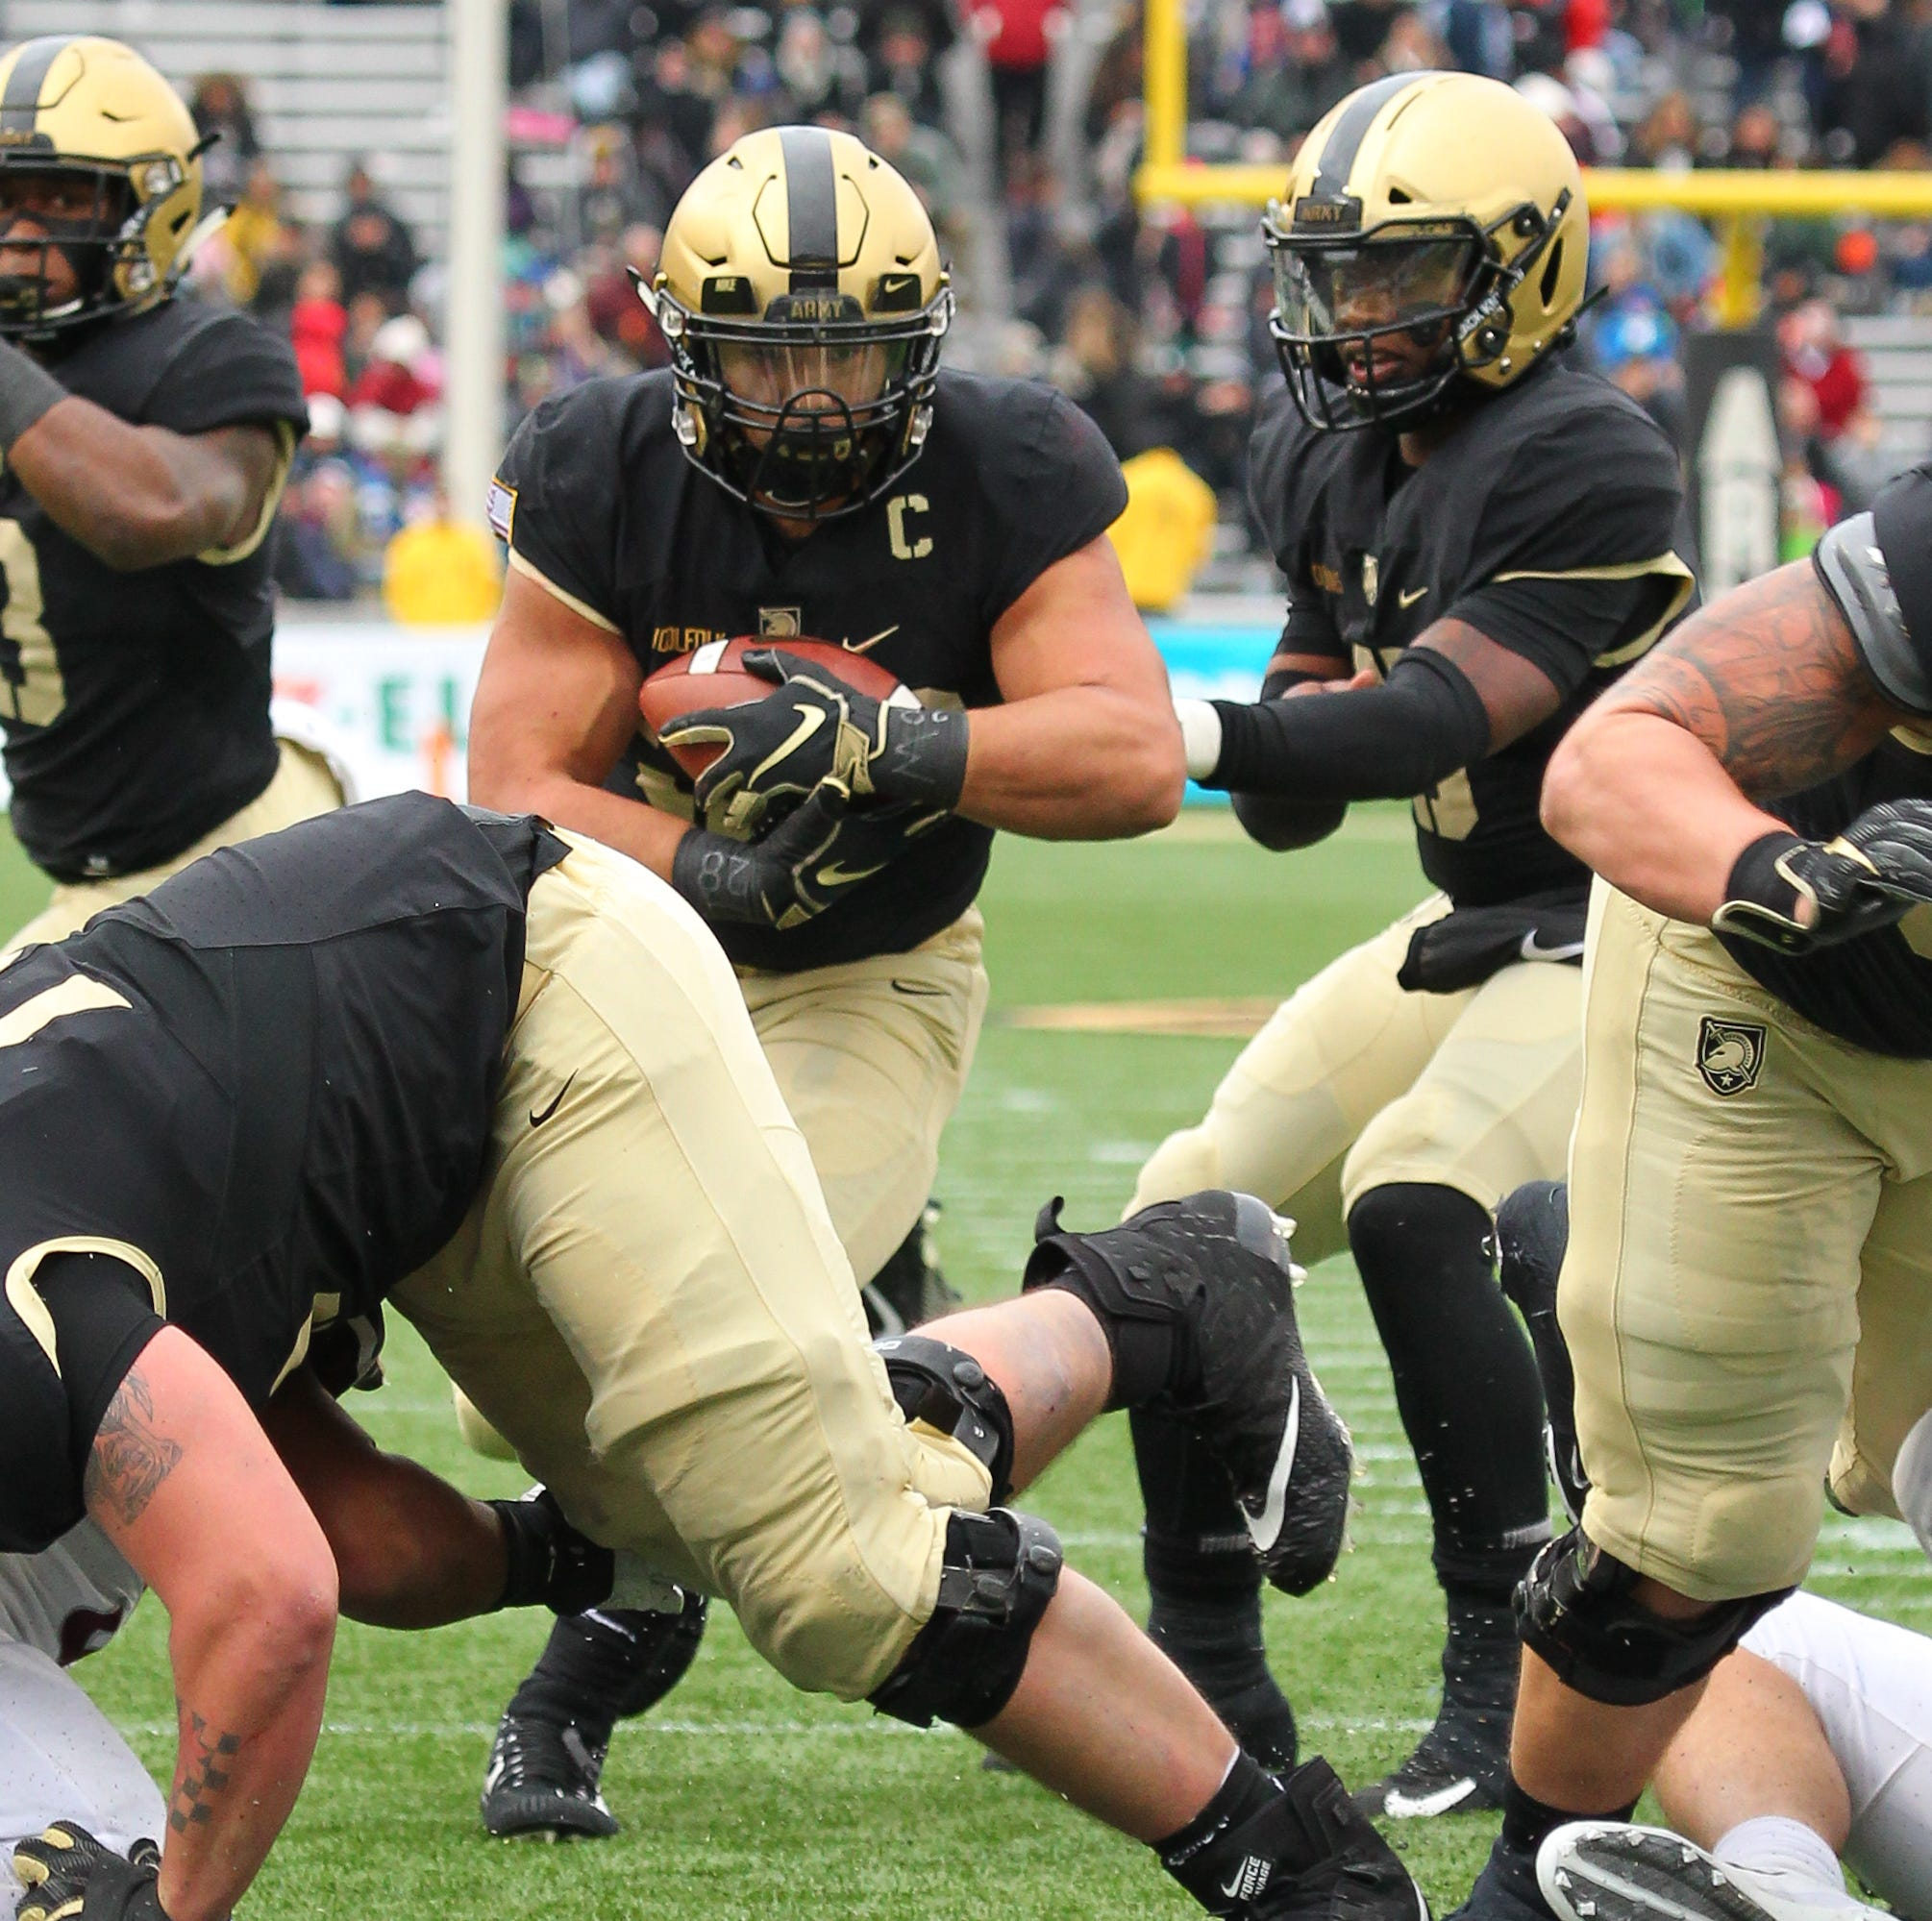 Darnell Woolfolk's astonishing West Point career winding down with Army-Navy game